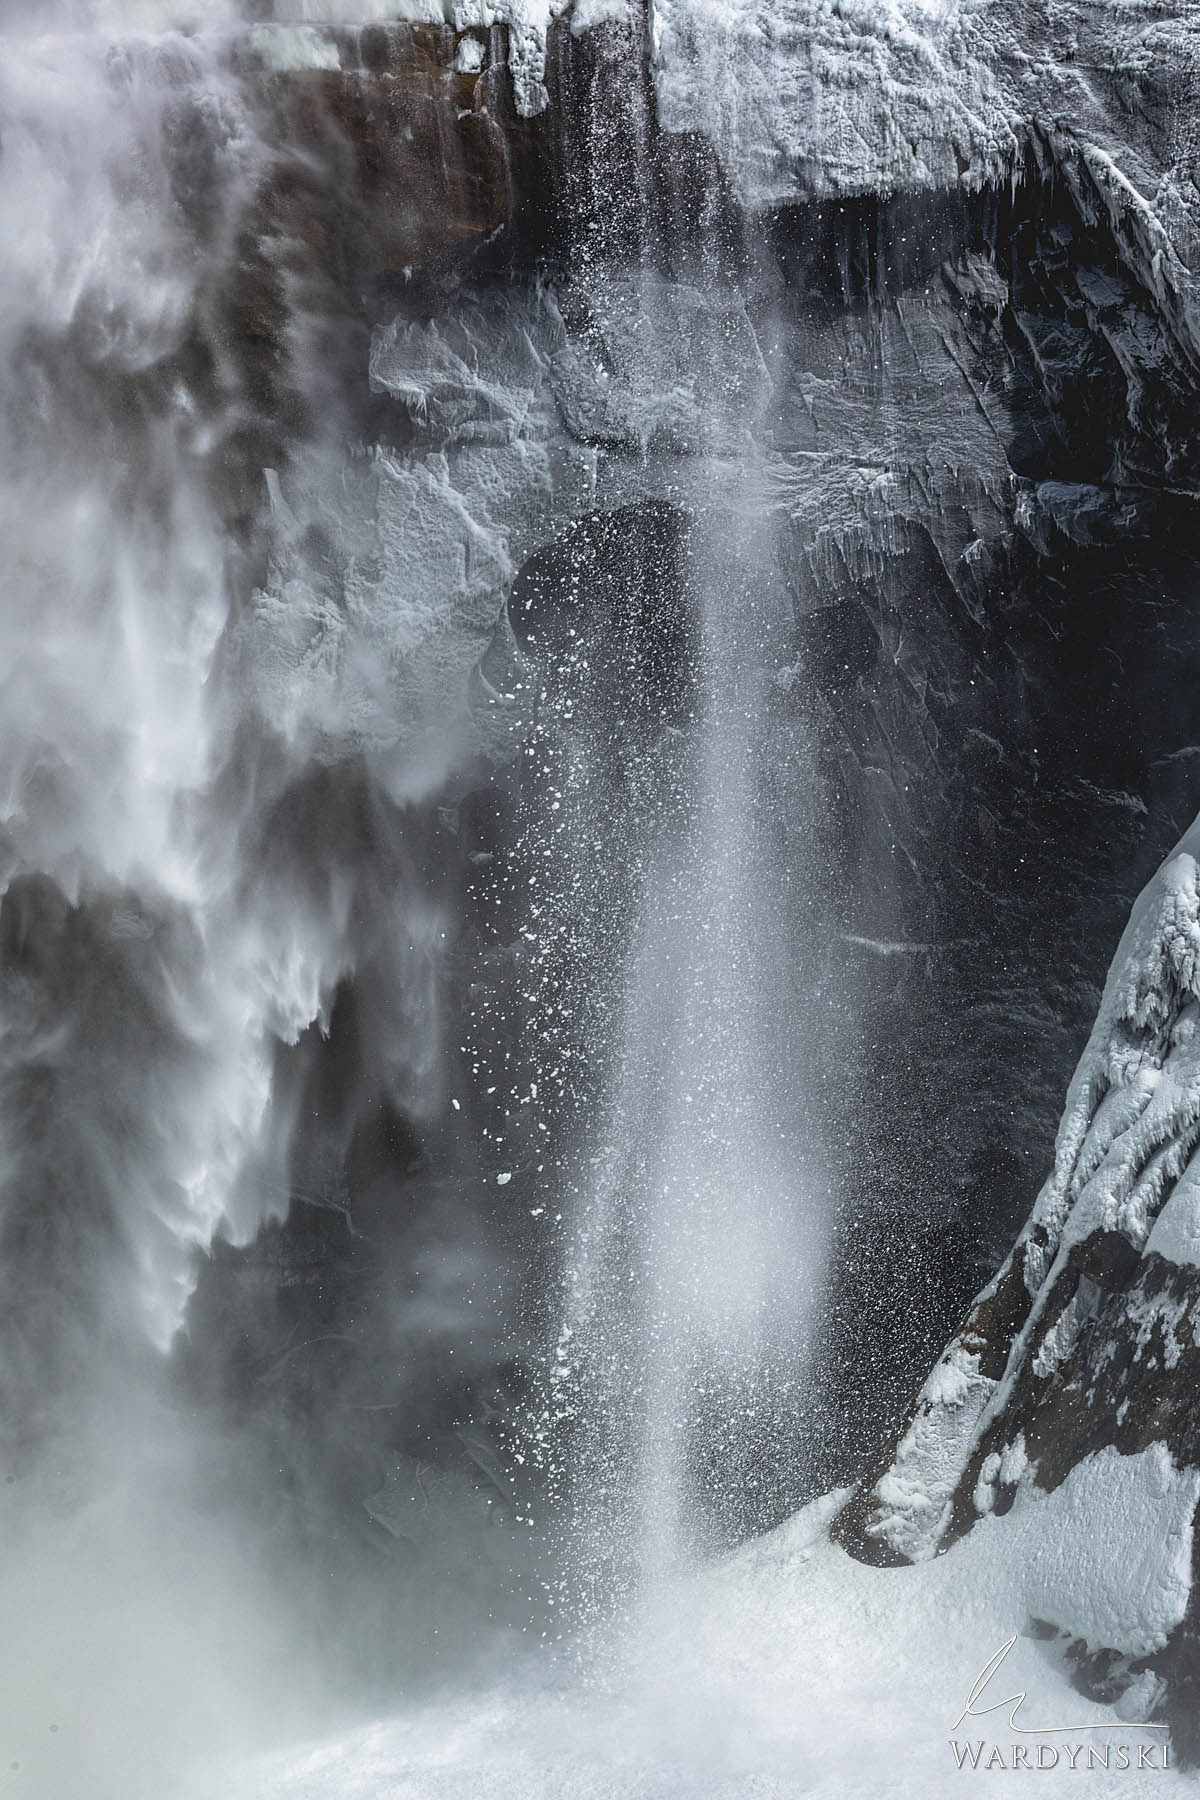 Fine Art Print | Limited Edition of 100  Ice and snow comes crashing down at the base of Upper Yosemite Falls. These mini avalanches...